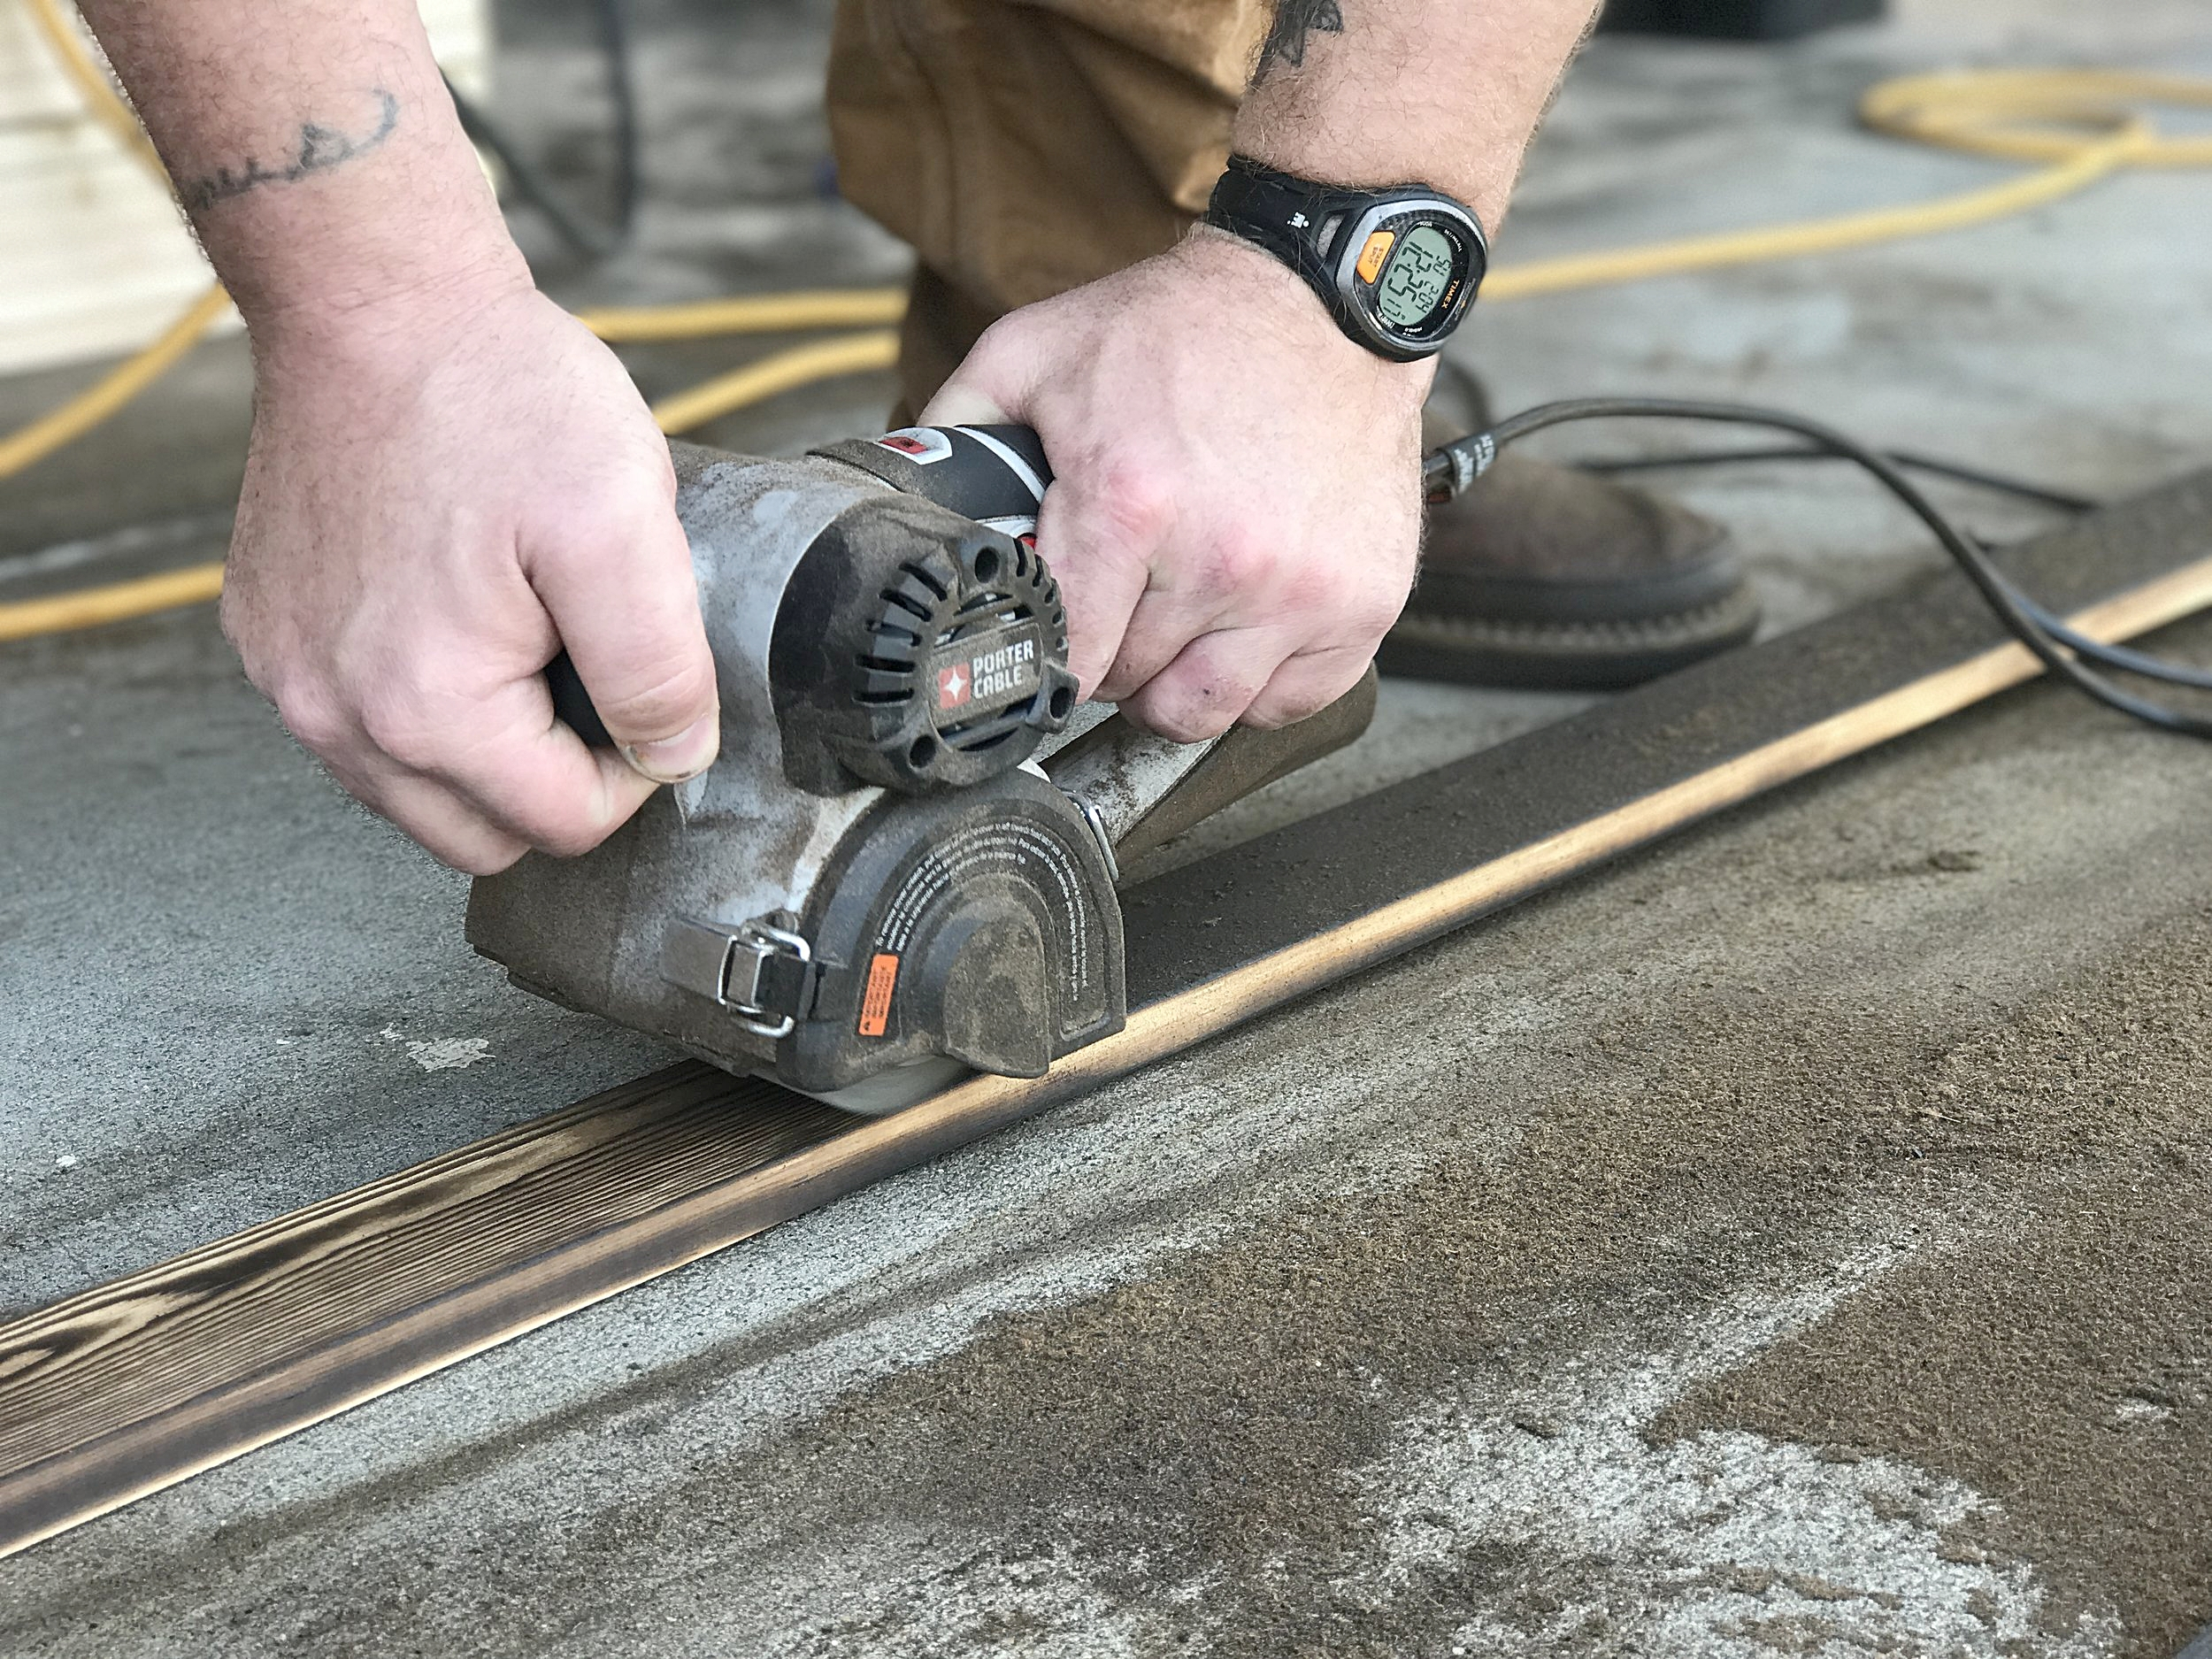 Removing soft spring wood and loose debris is no challenge with the Restorer and optional wire wheel.